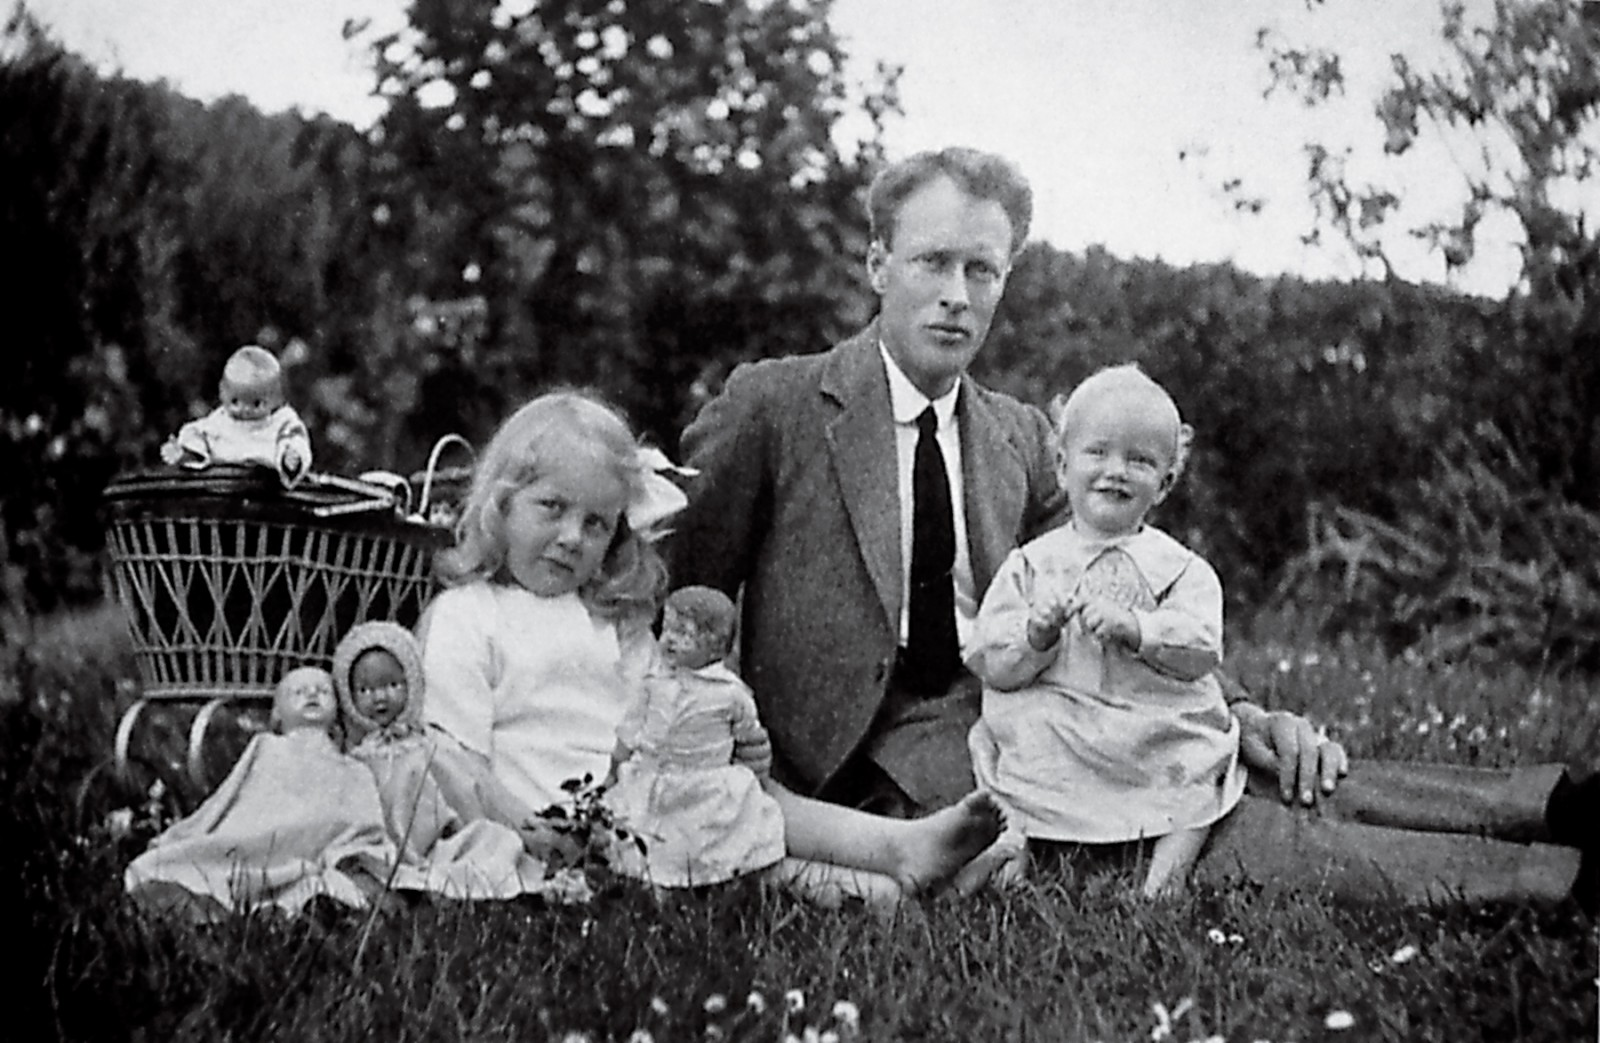 Maurice Wilkins, nearing his first birthday, is seated on his father's knee in Pongaroa, beside his older sister, Eithne. Although his family--which had emigrated from Ireland in 1913--left New Zealand permanently in 1923, Maurice Wilkins, now aged 87, retains fond memories of the country of his birth.